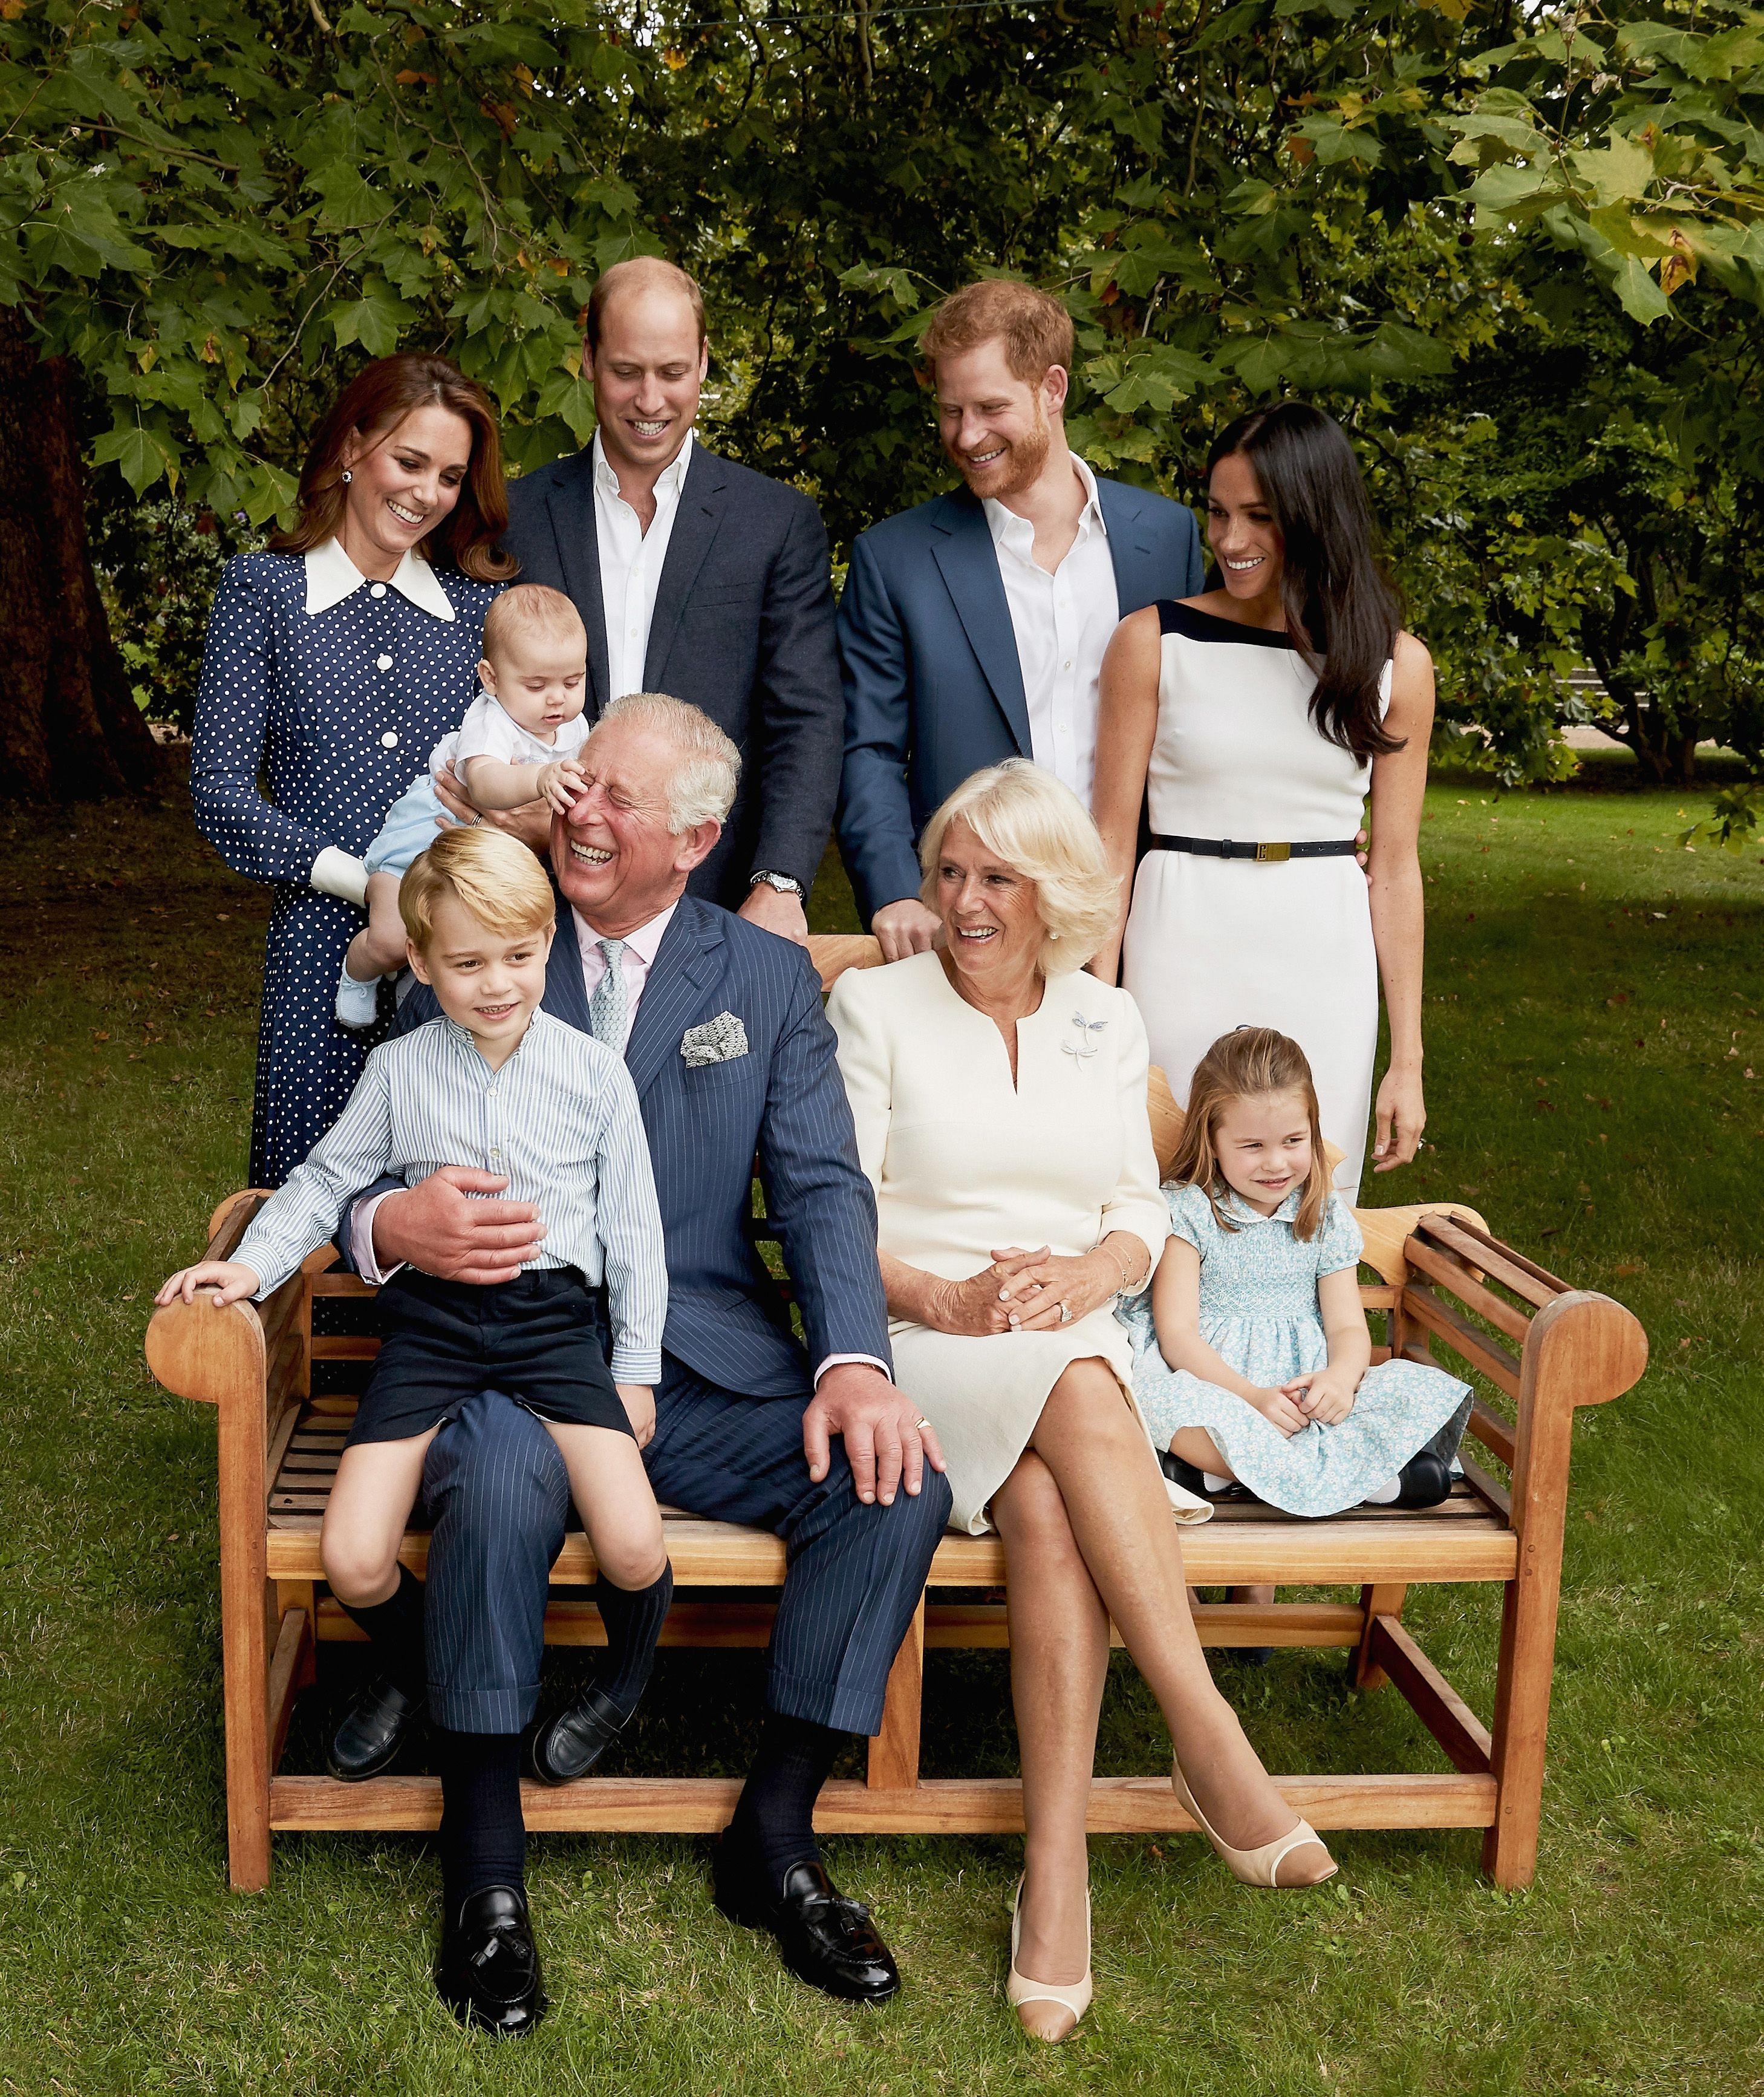 Prince Charles 70th birthday portrait is a sweet family photo picture